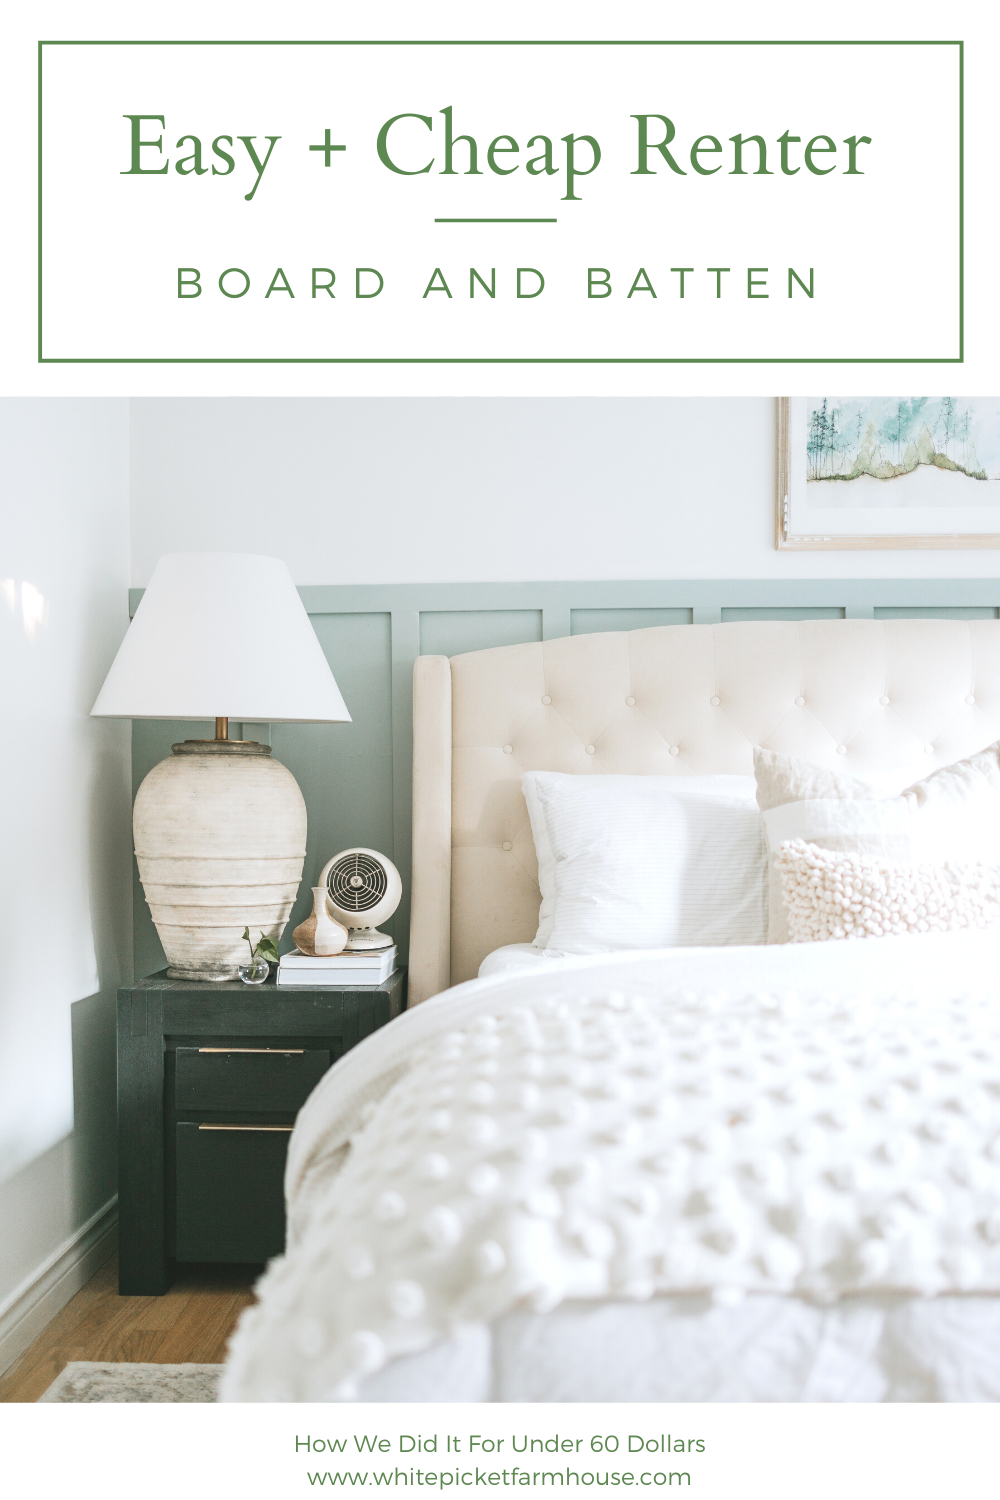 Super Easy and Cheap Renter Board and Batten. How To Board and Batten Your Walls Even If You're In A Rental For Very Low Cost. Also My Secret Paint Colour and Pre-Primed Boards! Our Twist on A Modern Coastal Master Bedroom in our Updated Bungalow.